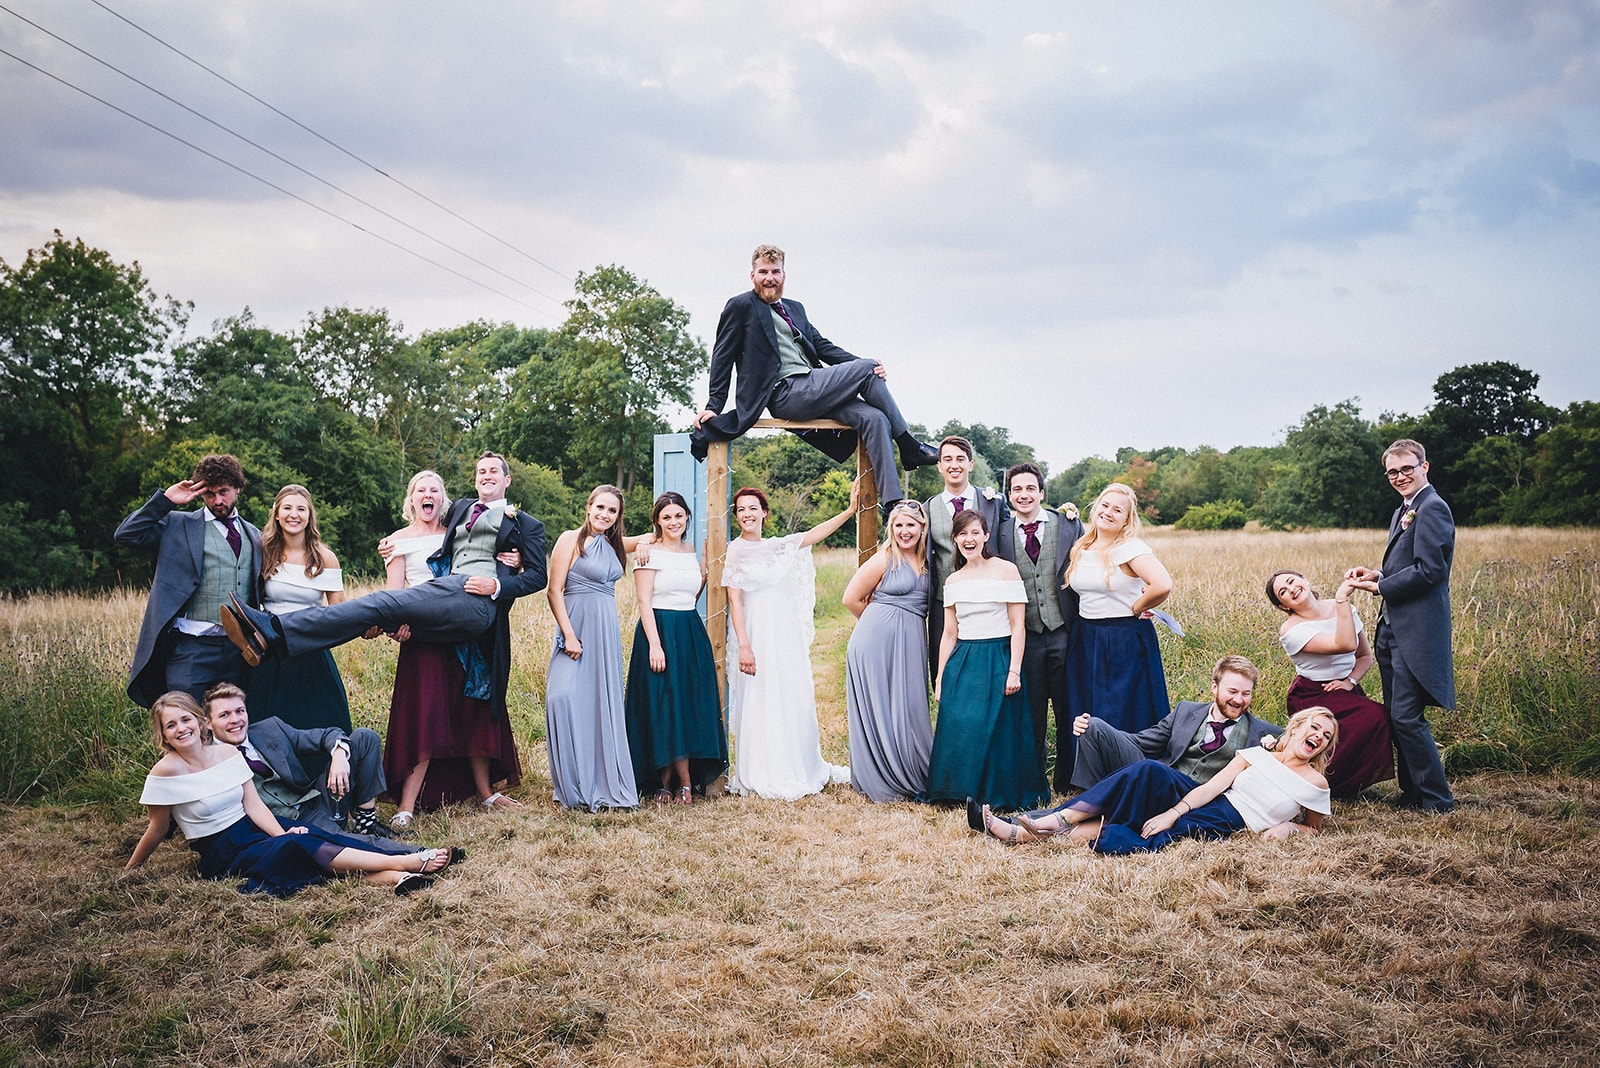 Bride, groom, bridesmaids and groomsmen pose in a fun group shot